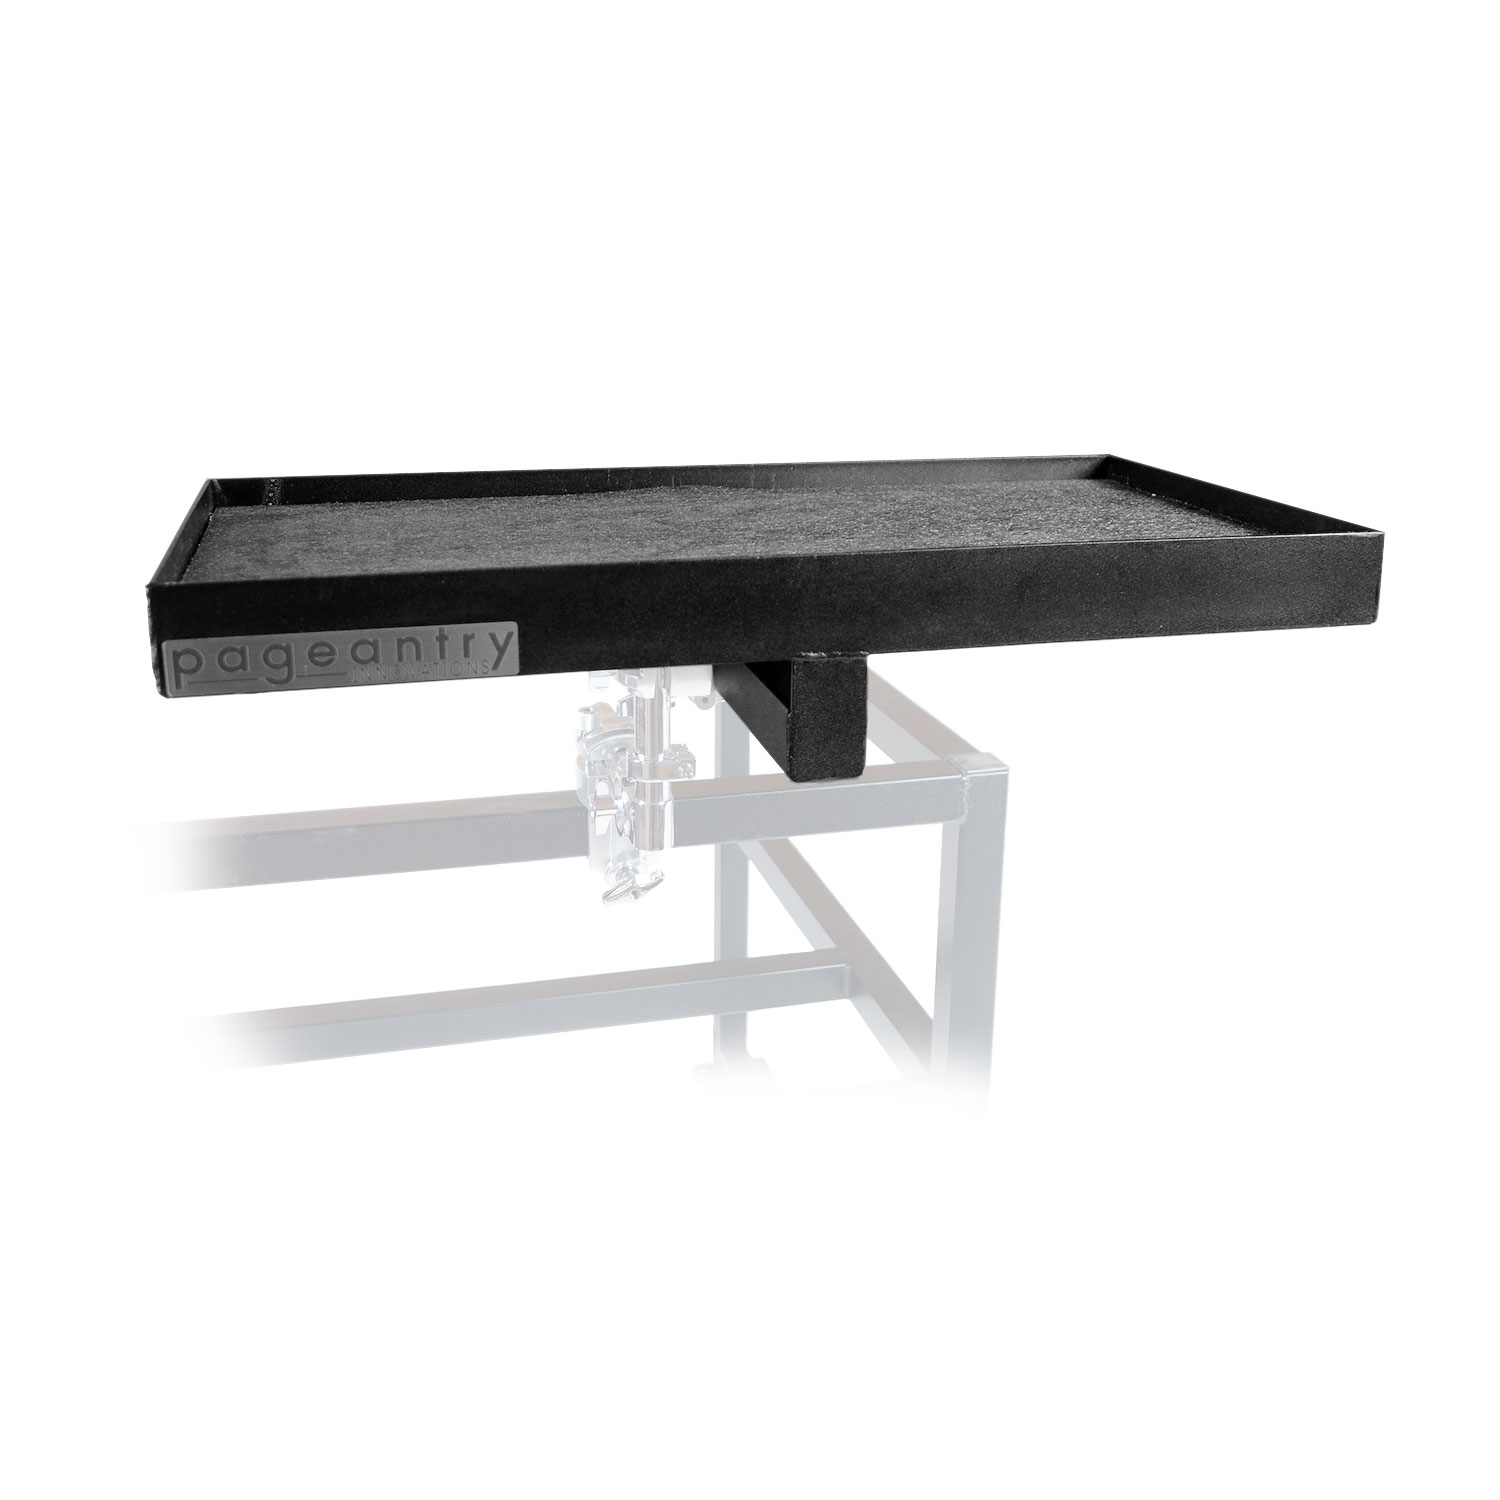 "Pageantry Innovations TT-20 24"" x 12"" Tray Table"